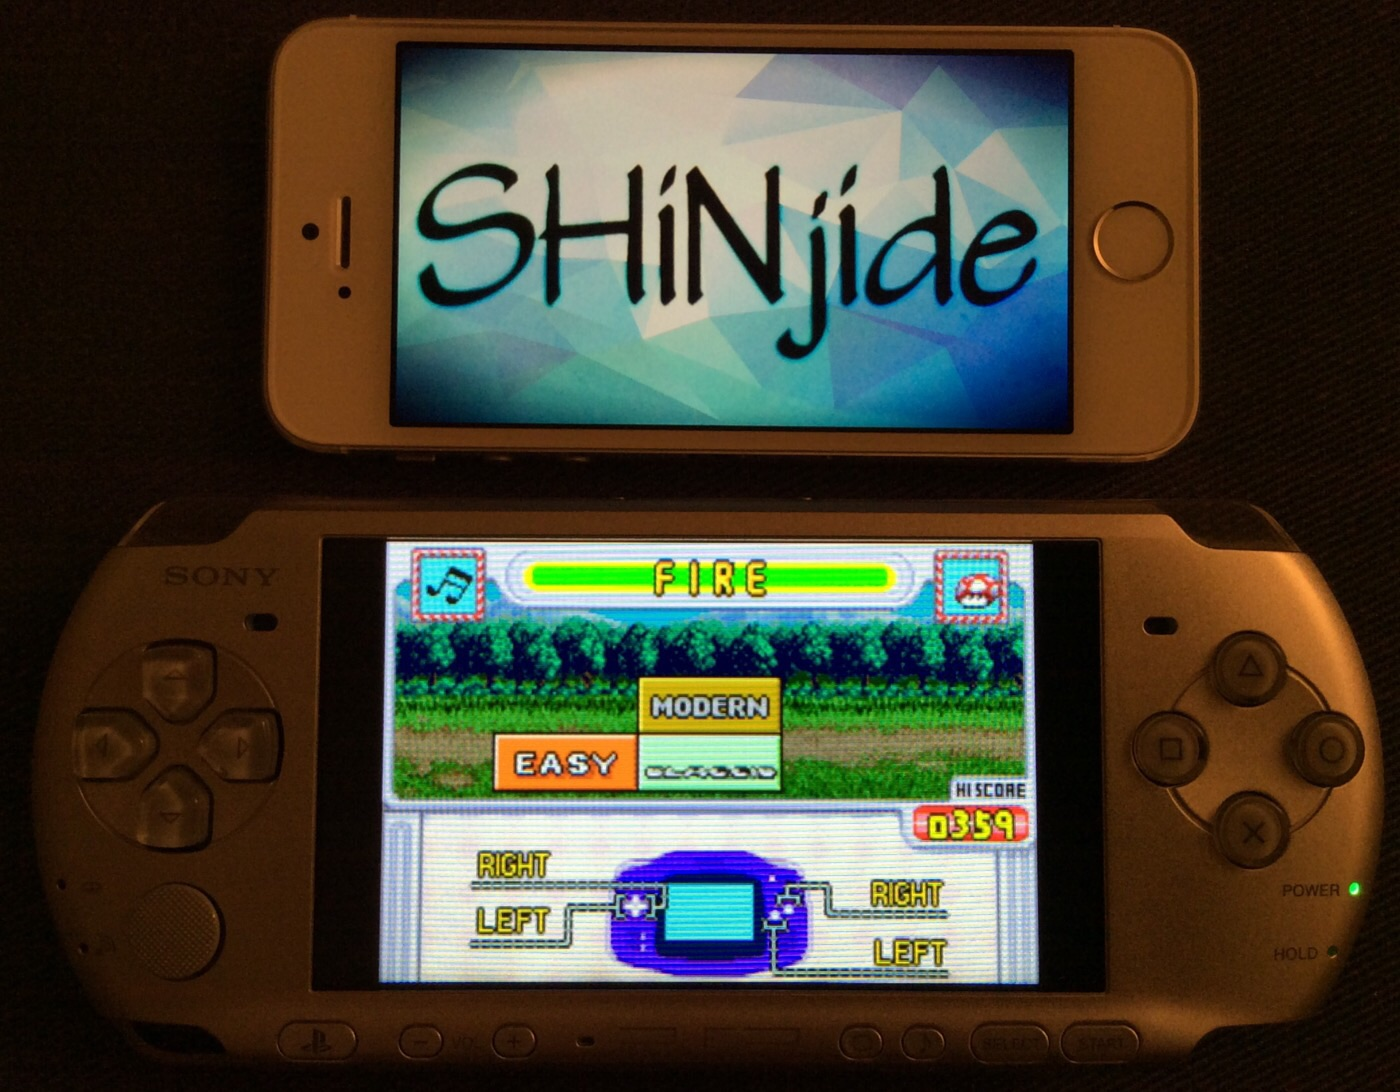 SHiNjide: Game & Watch Gallery 4: Fire [Classic: Easy] (GBA Emulated) 359 points on 2014-09-30 16:43:57